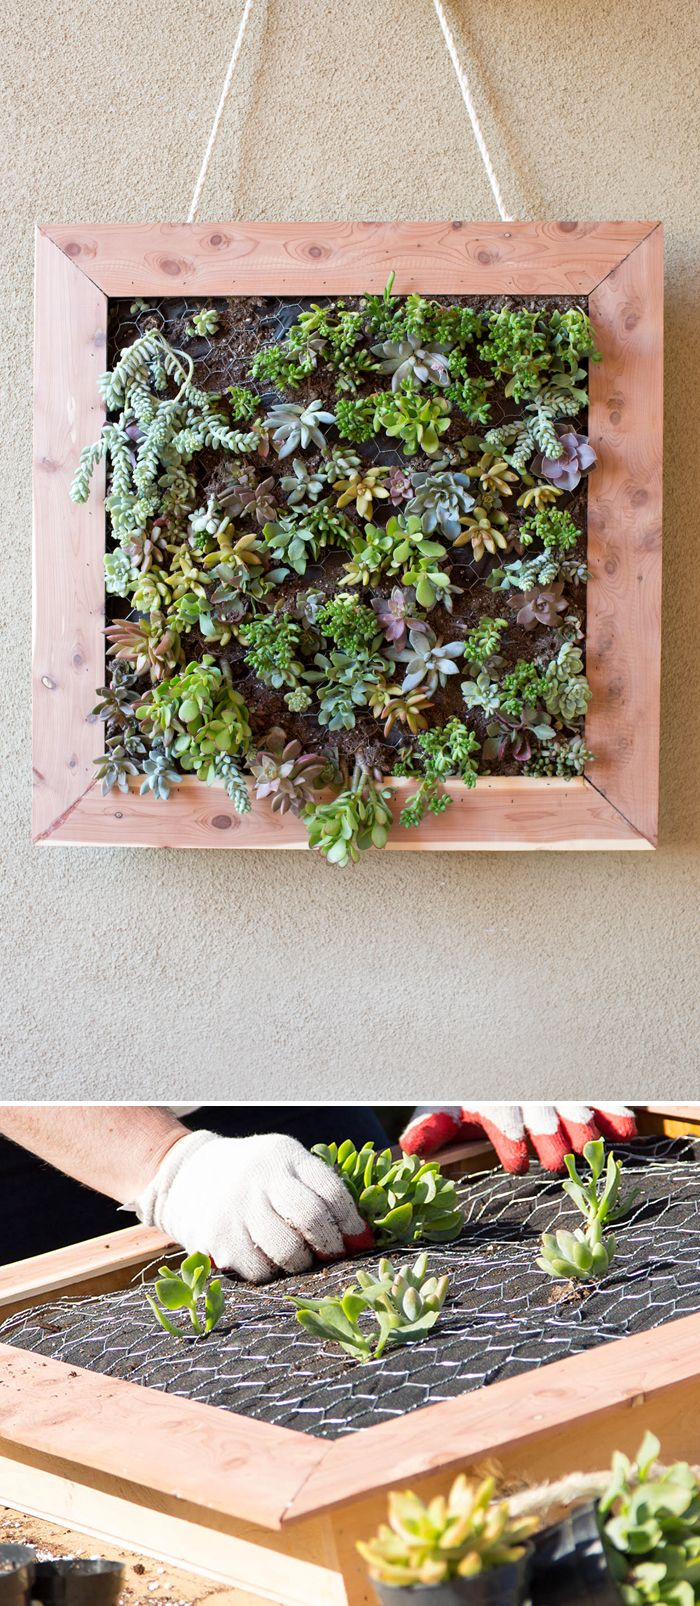 Turn Plants Into Art You Can Hang From Your Wall With This Diy Vertical Succulent Garden V Vertical Succulent Gardens Succulent Wall Garden Succulent Wall Art